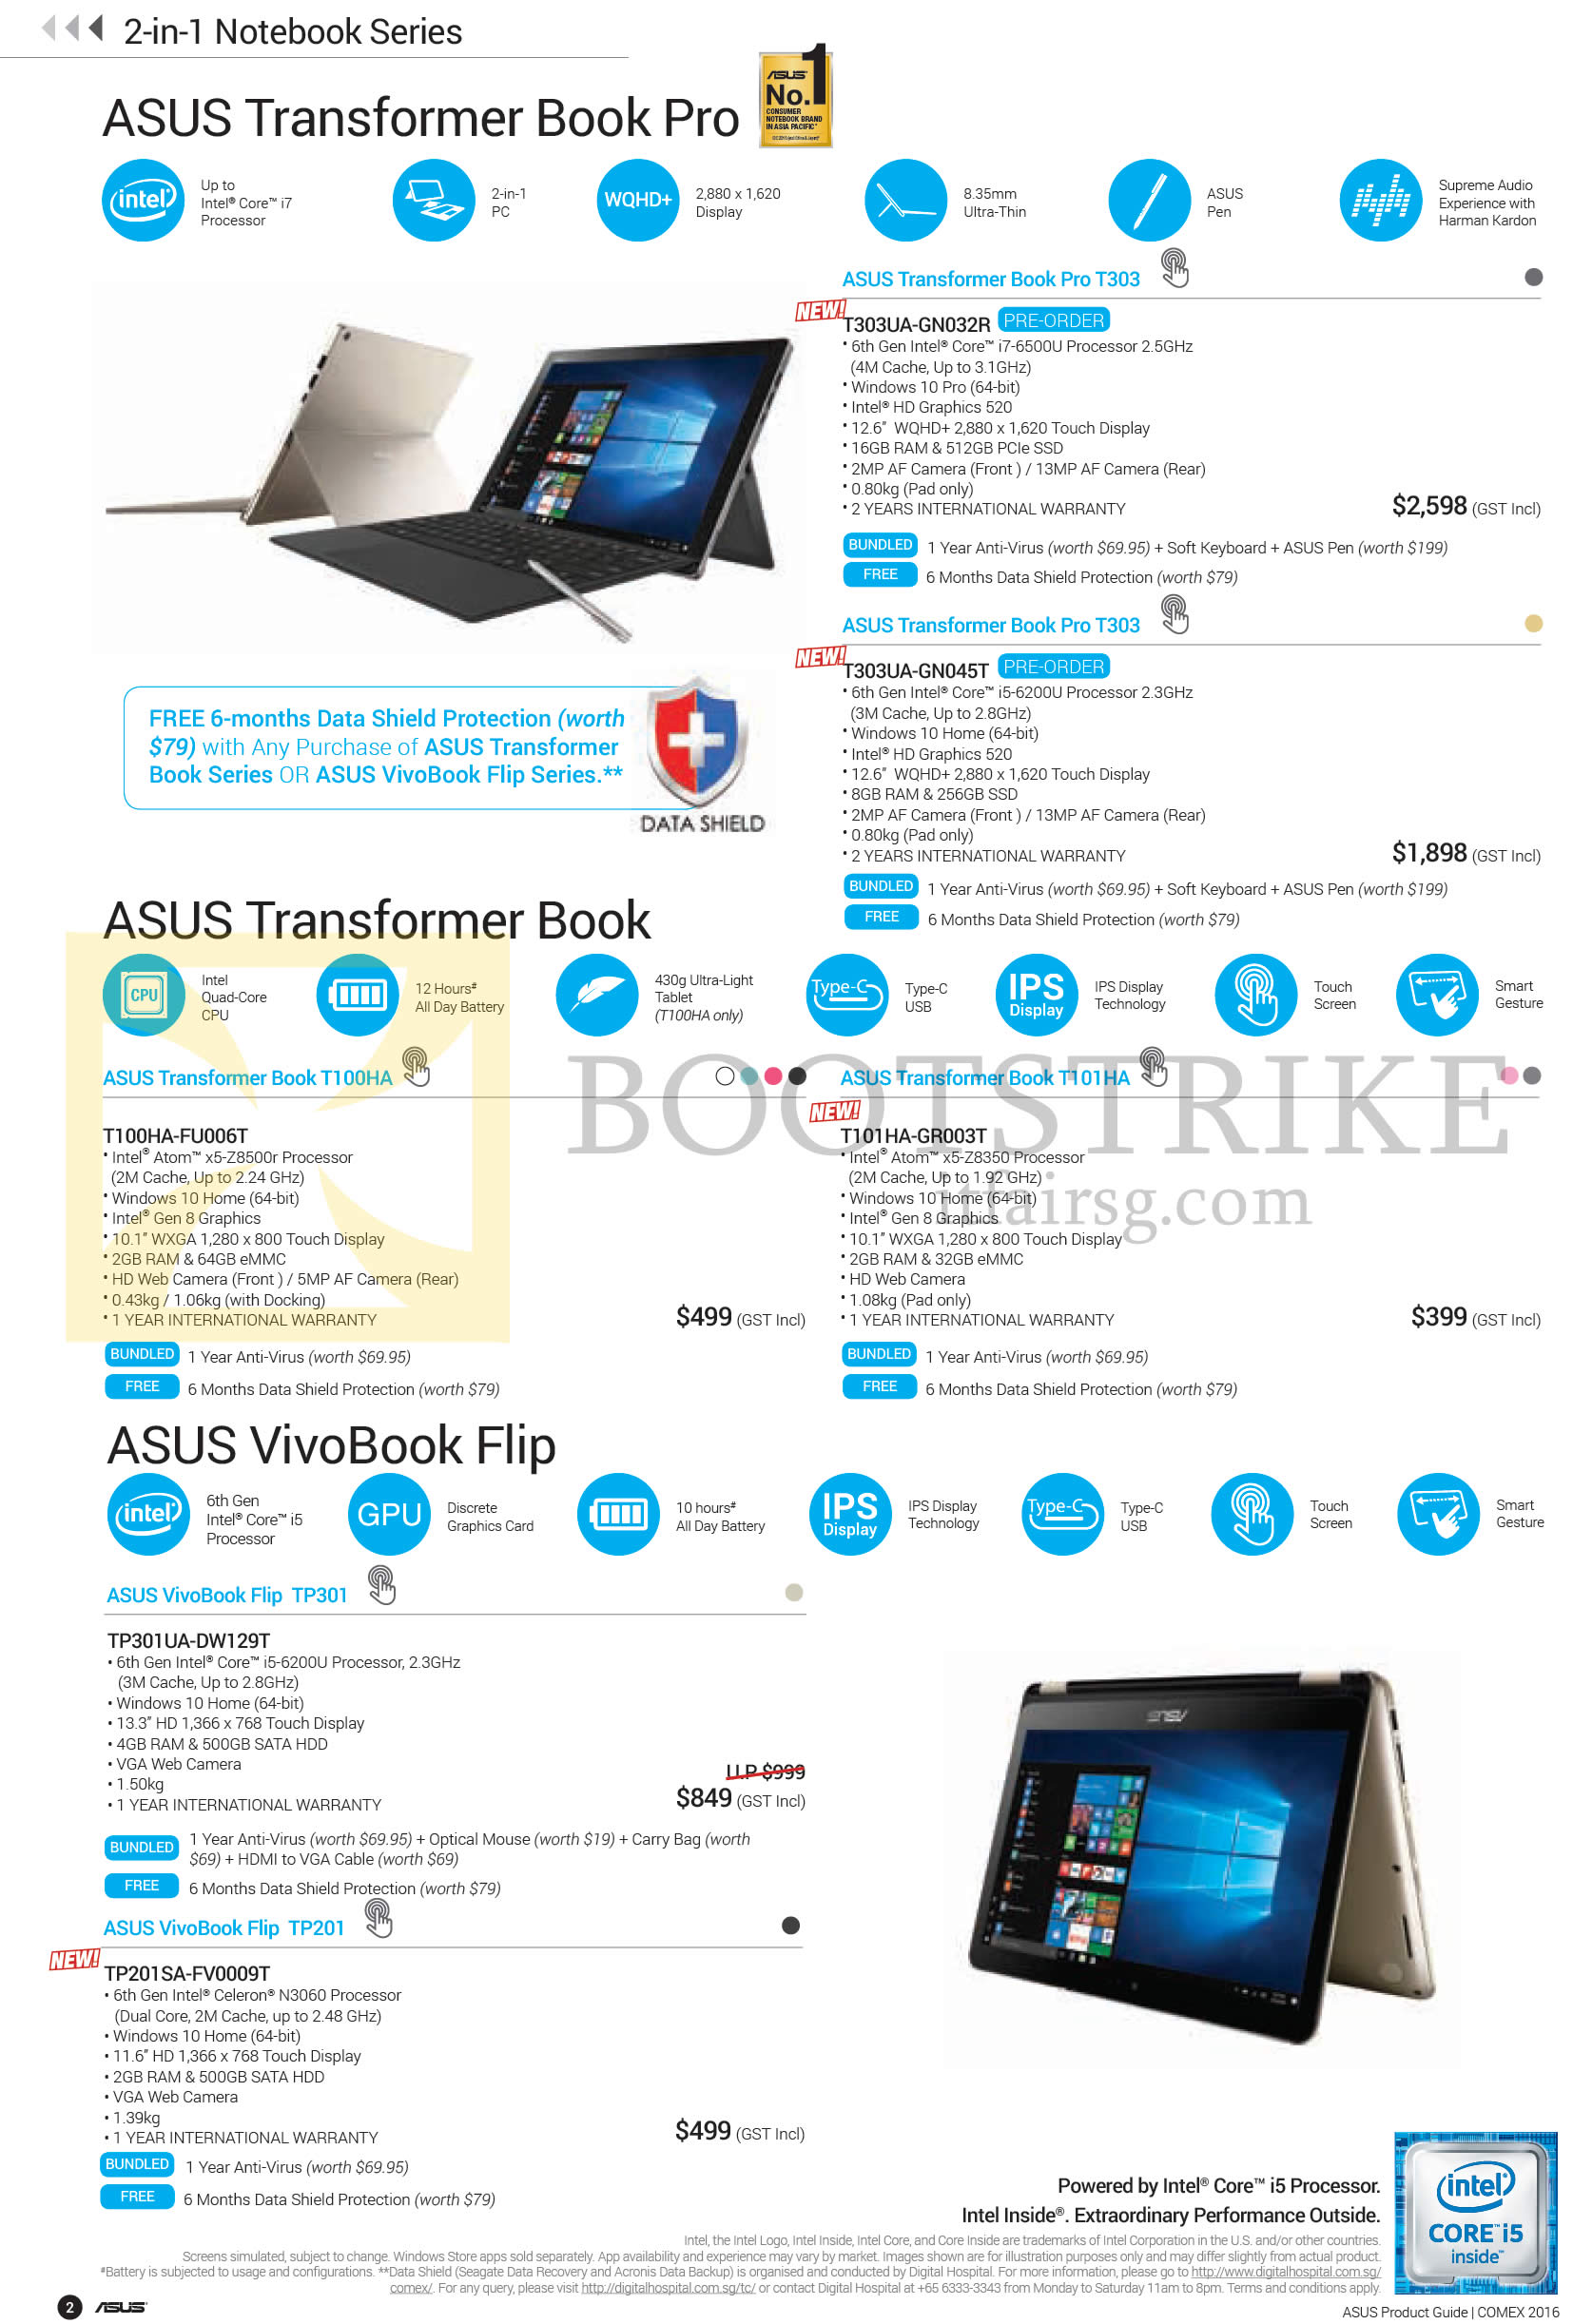 COMEX 2016 price list image brochure of ASUS Notebooks Transformer Book Pro T303, T100HA, T101HA, VivoBook Flip TP301, TP201 Series